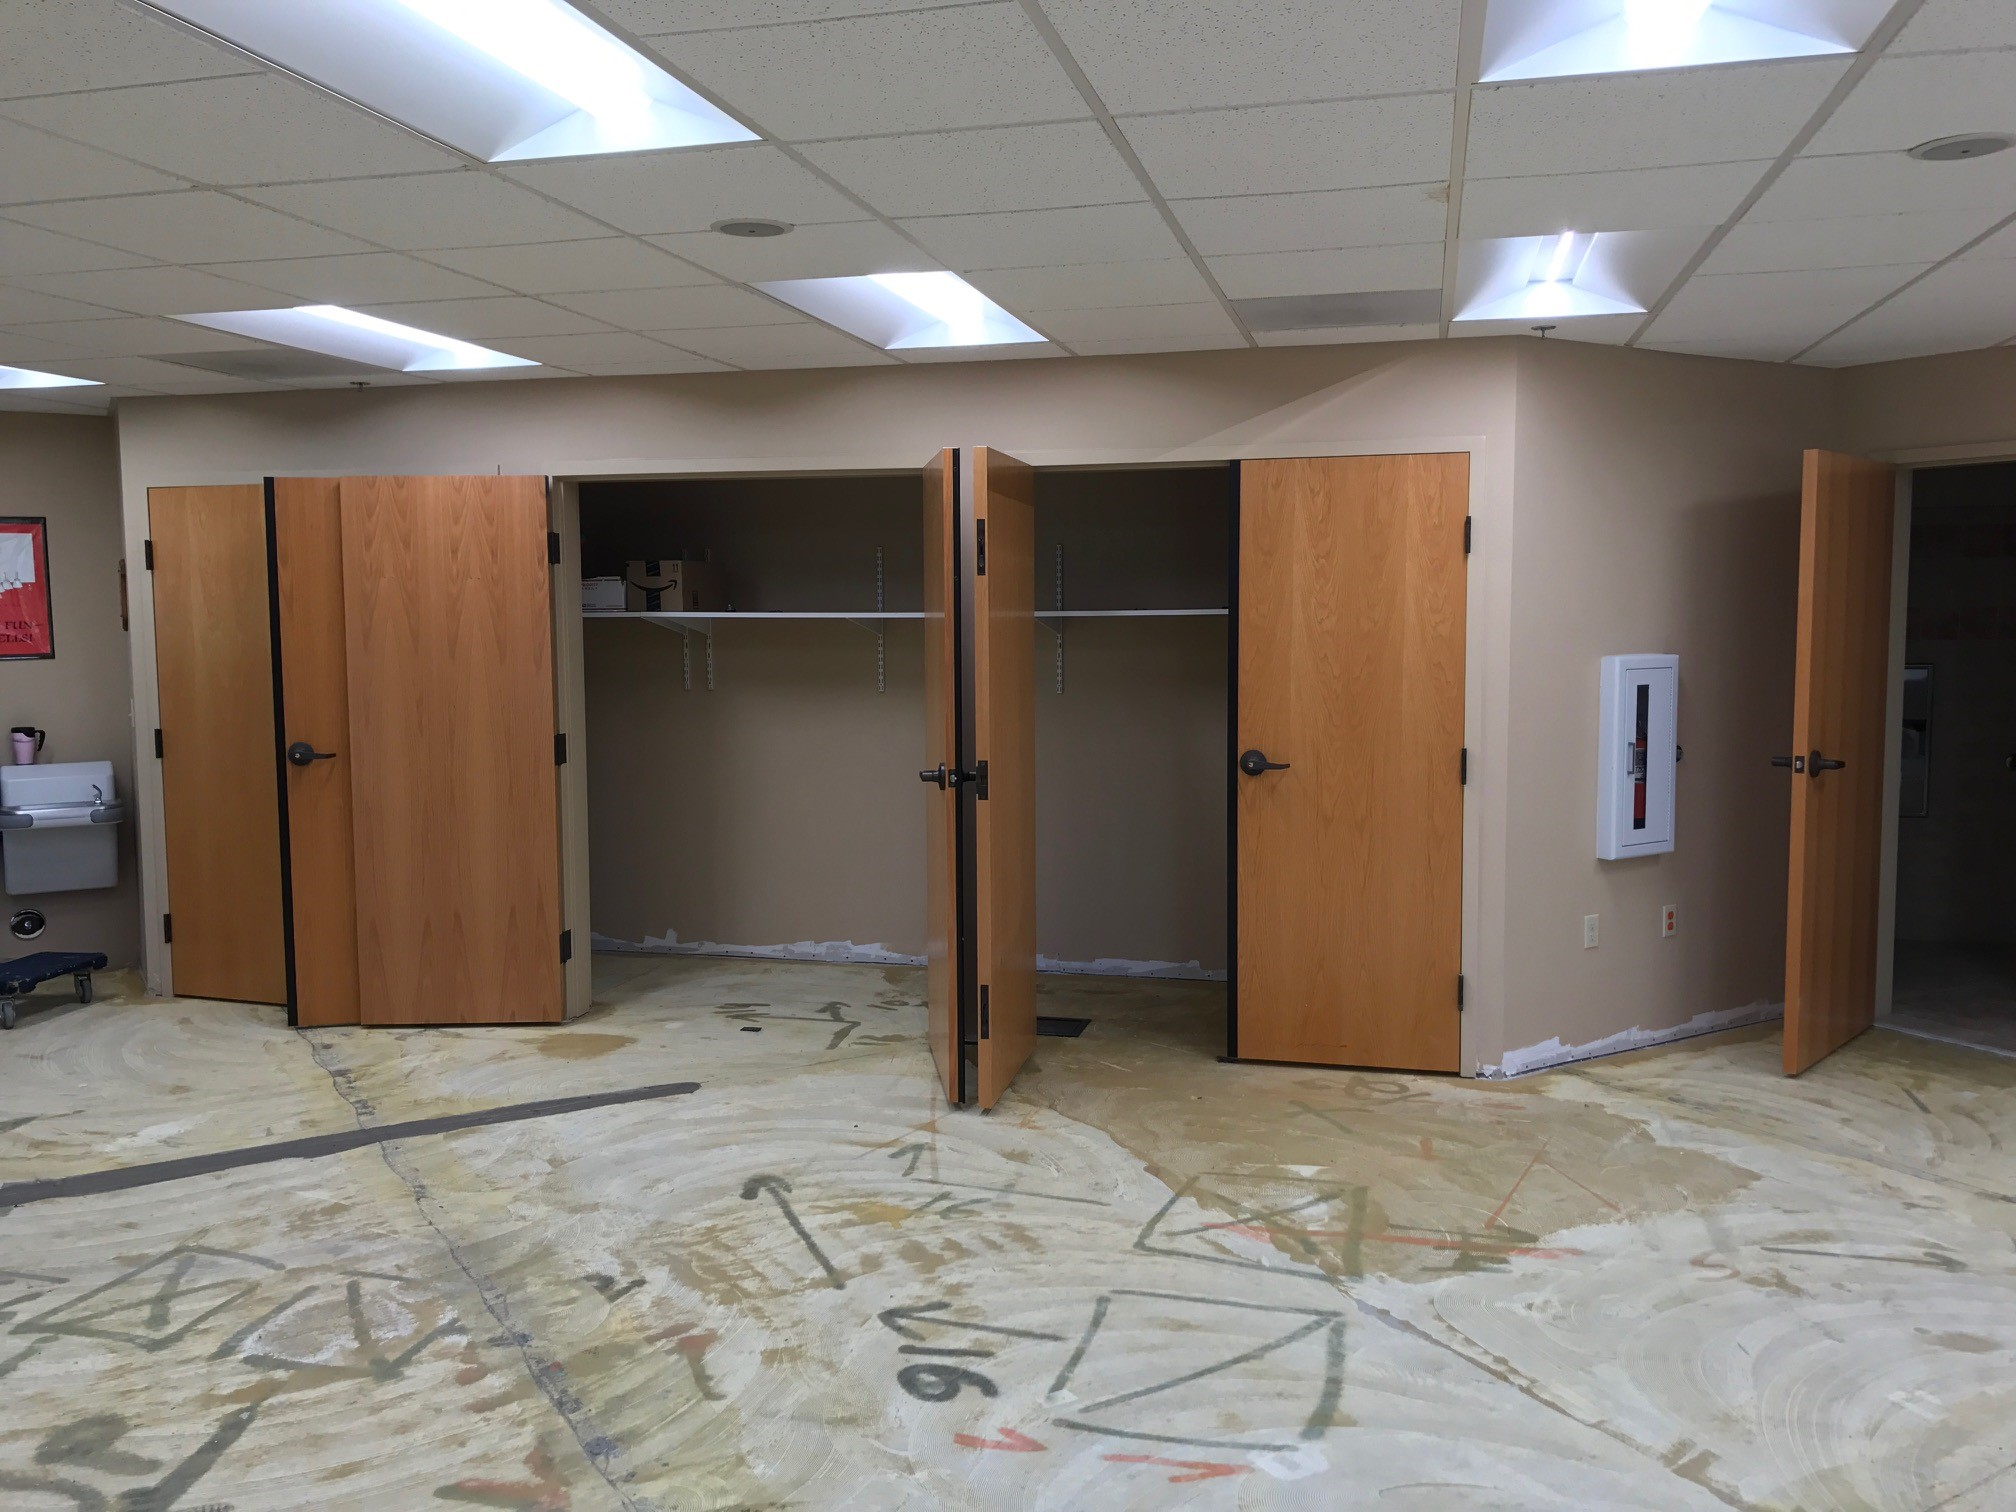 Escondido Lutheran Church Preschool Carpet Replacement 2.jpg